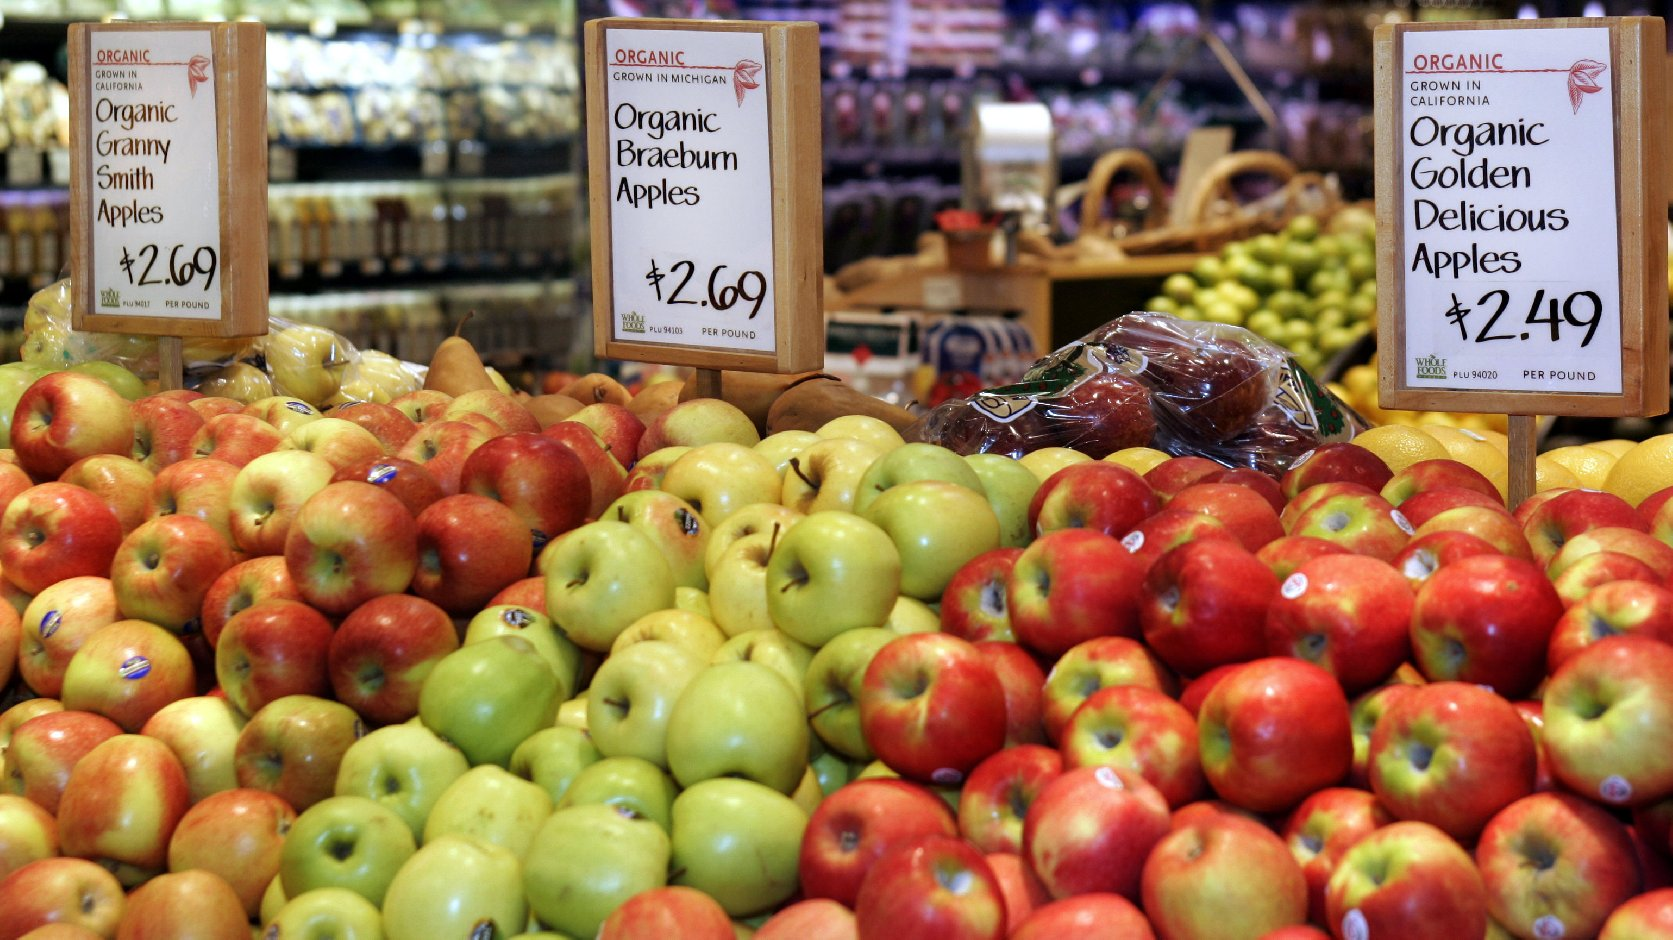 Organic Farming Factions Spat Over Synthetic Substances